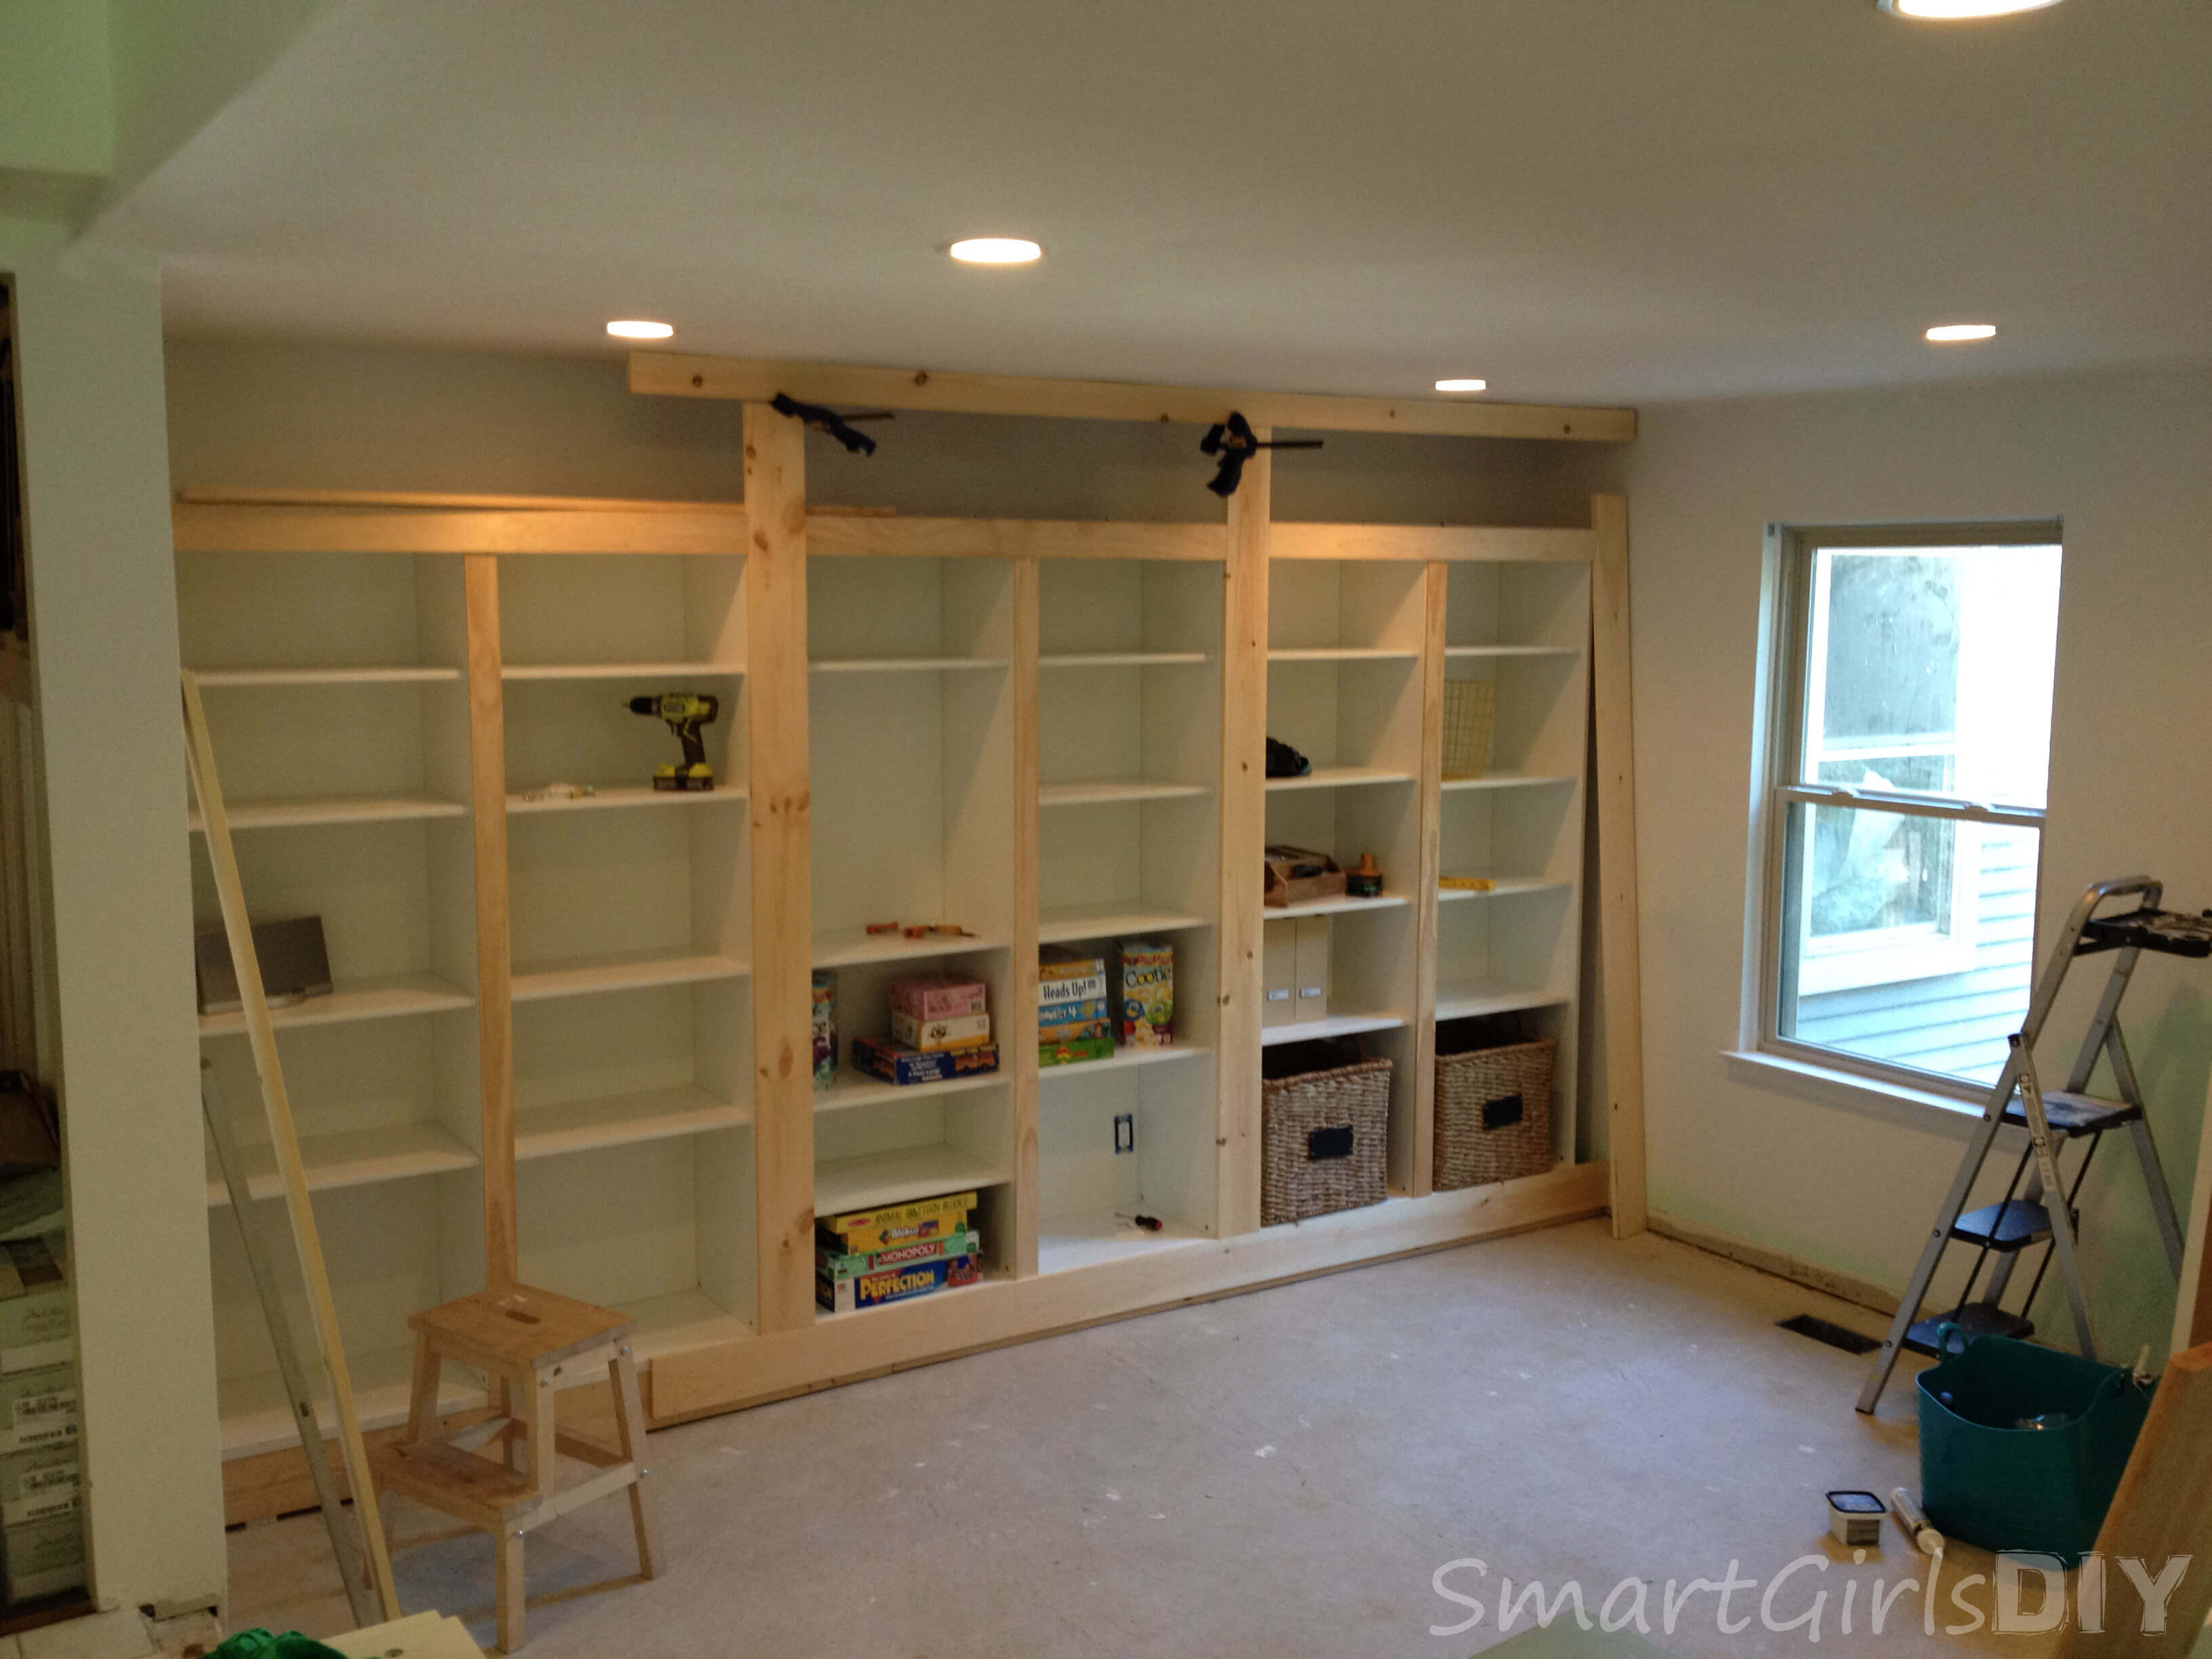 Built-In Bookcase and Why It's Not Finished (Family Room 7)